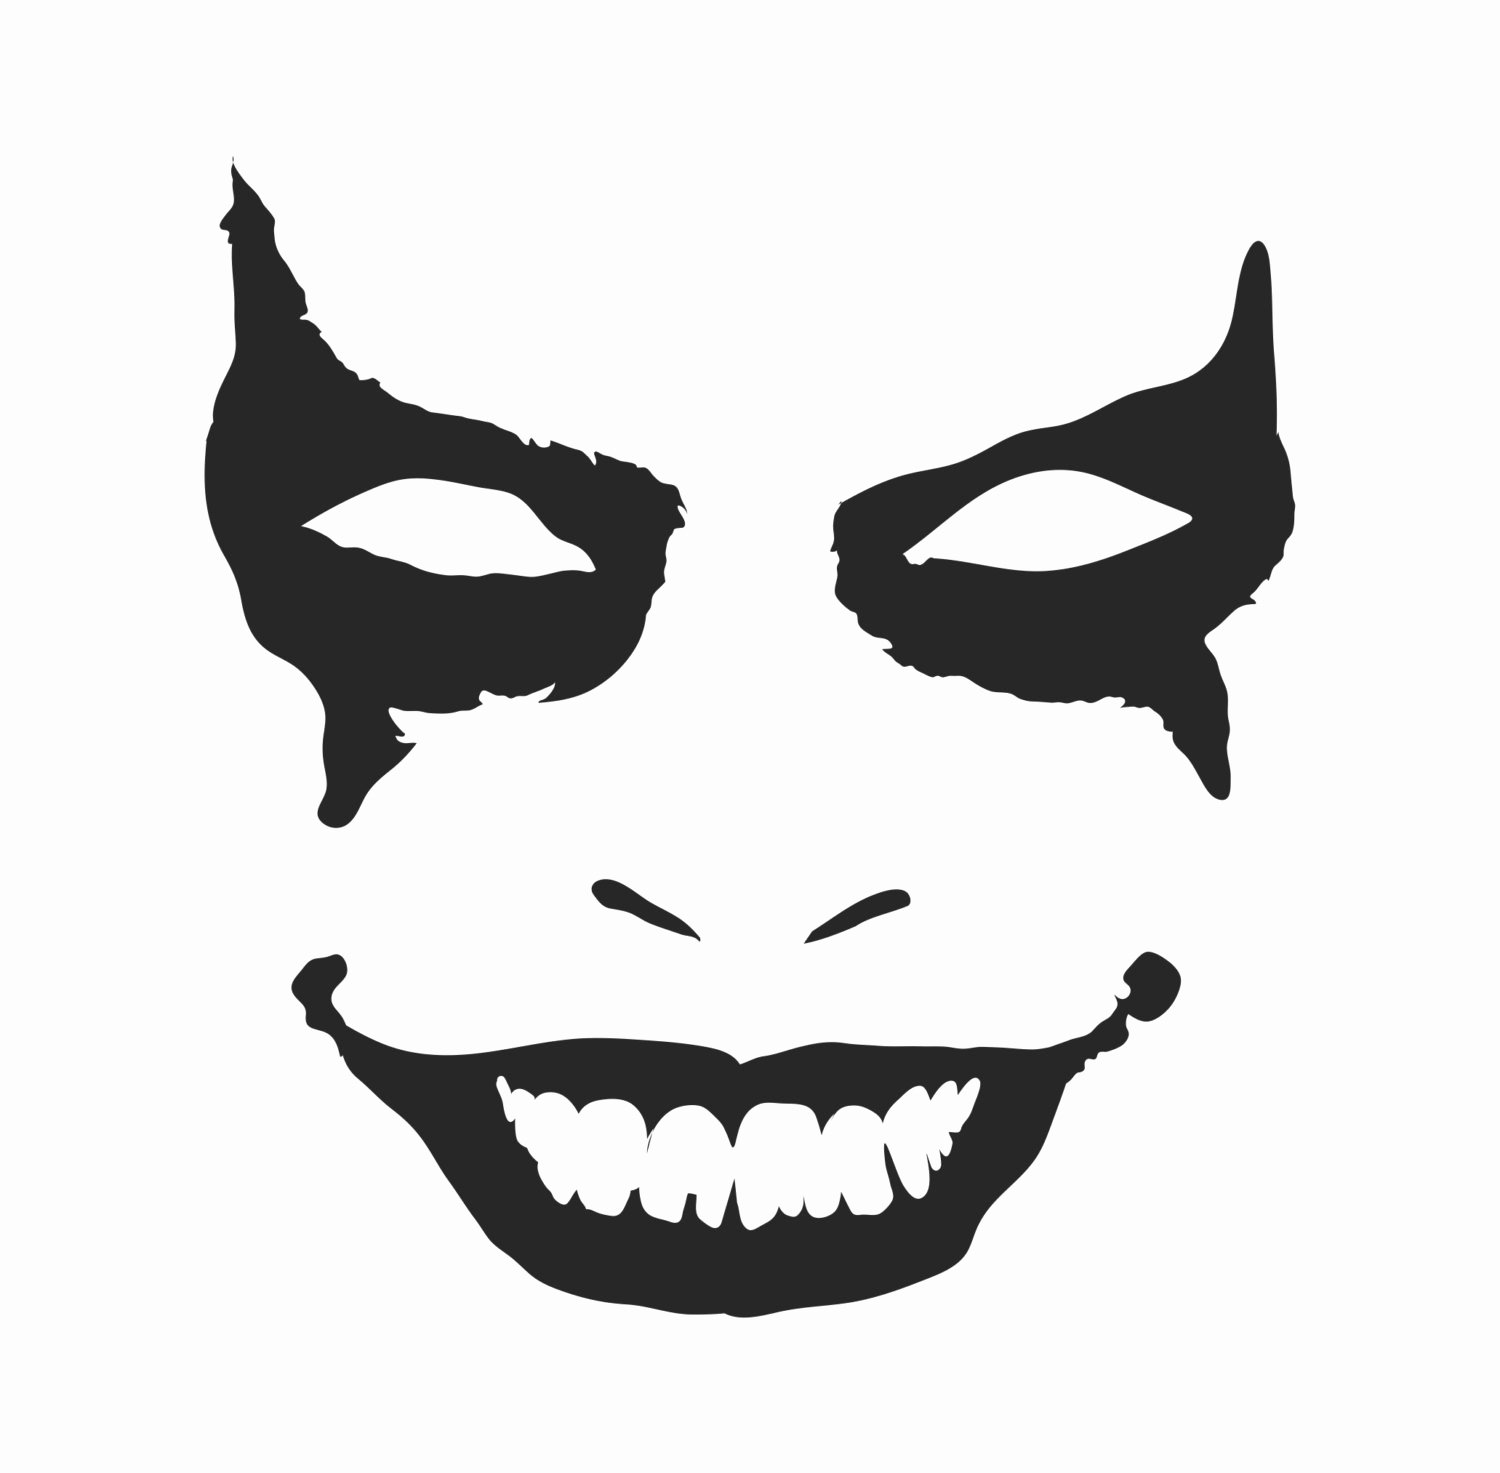 Joker Pumpkin Stencils Inspirational Joker Face Bumper Sticker Vinyl Decal Macbook Pro Air Sticker